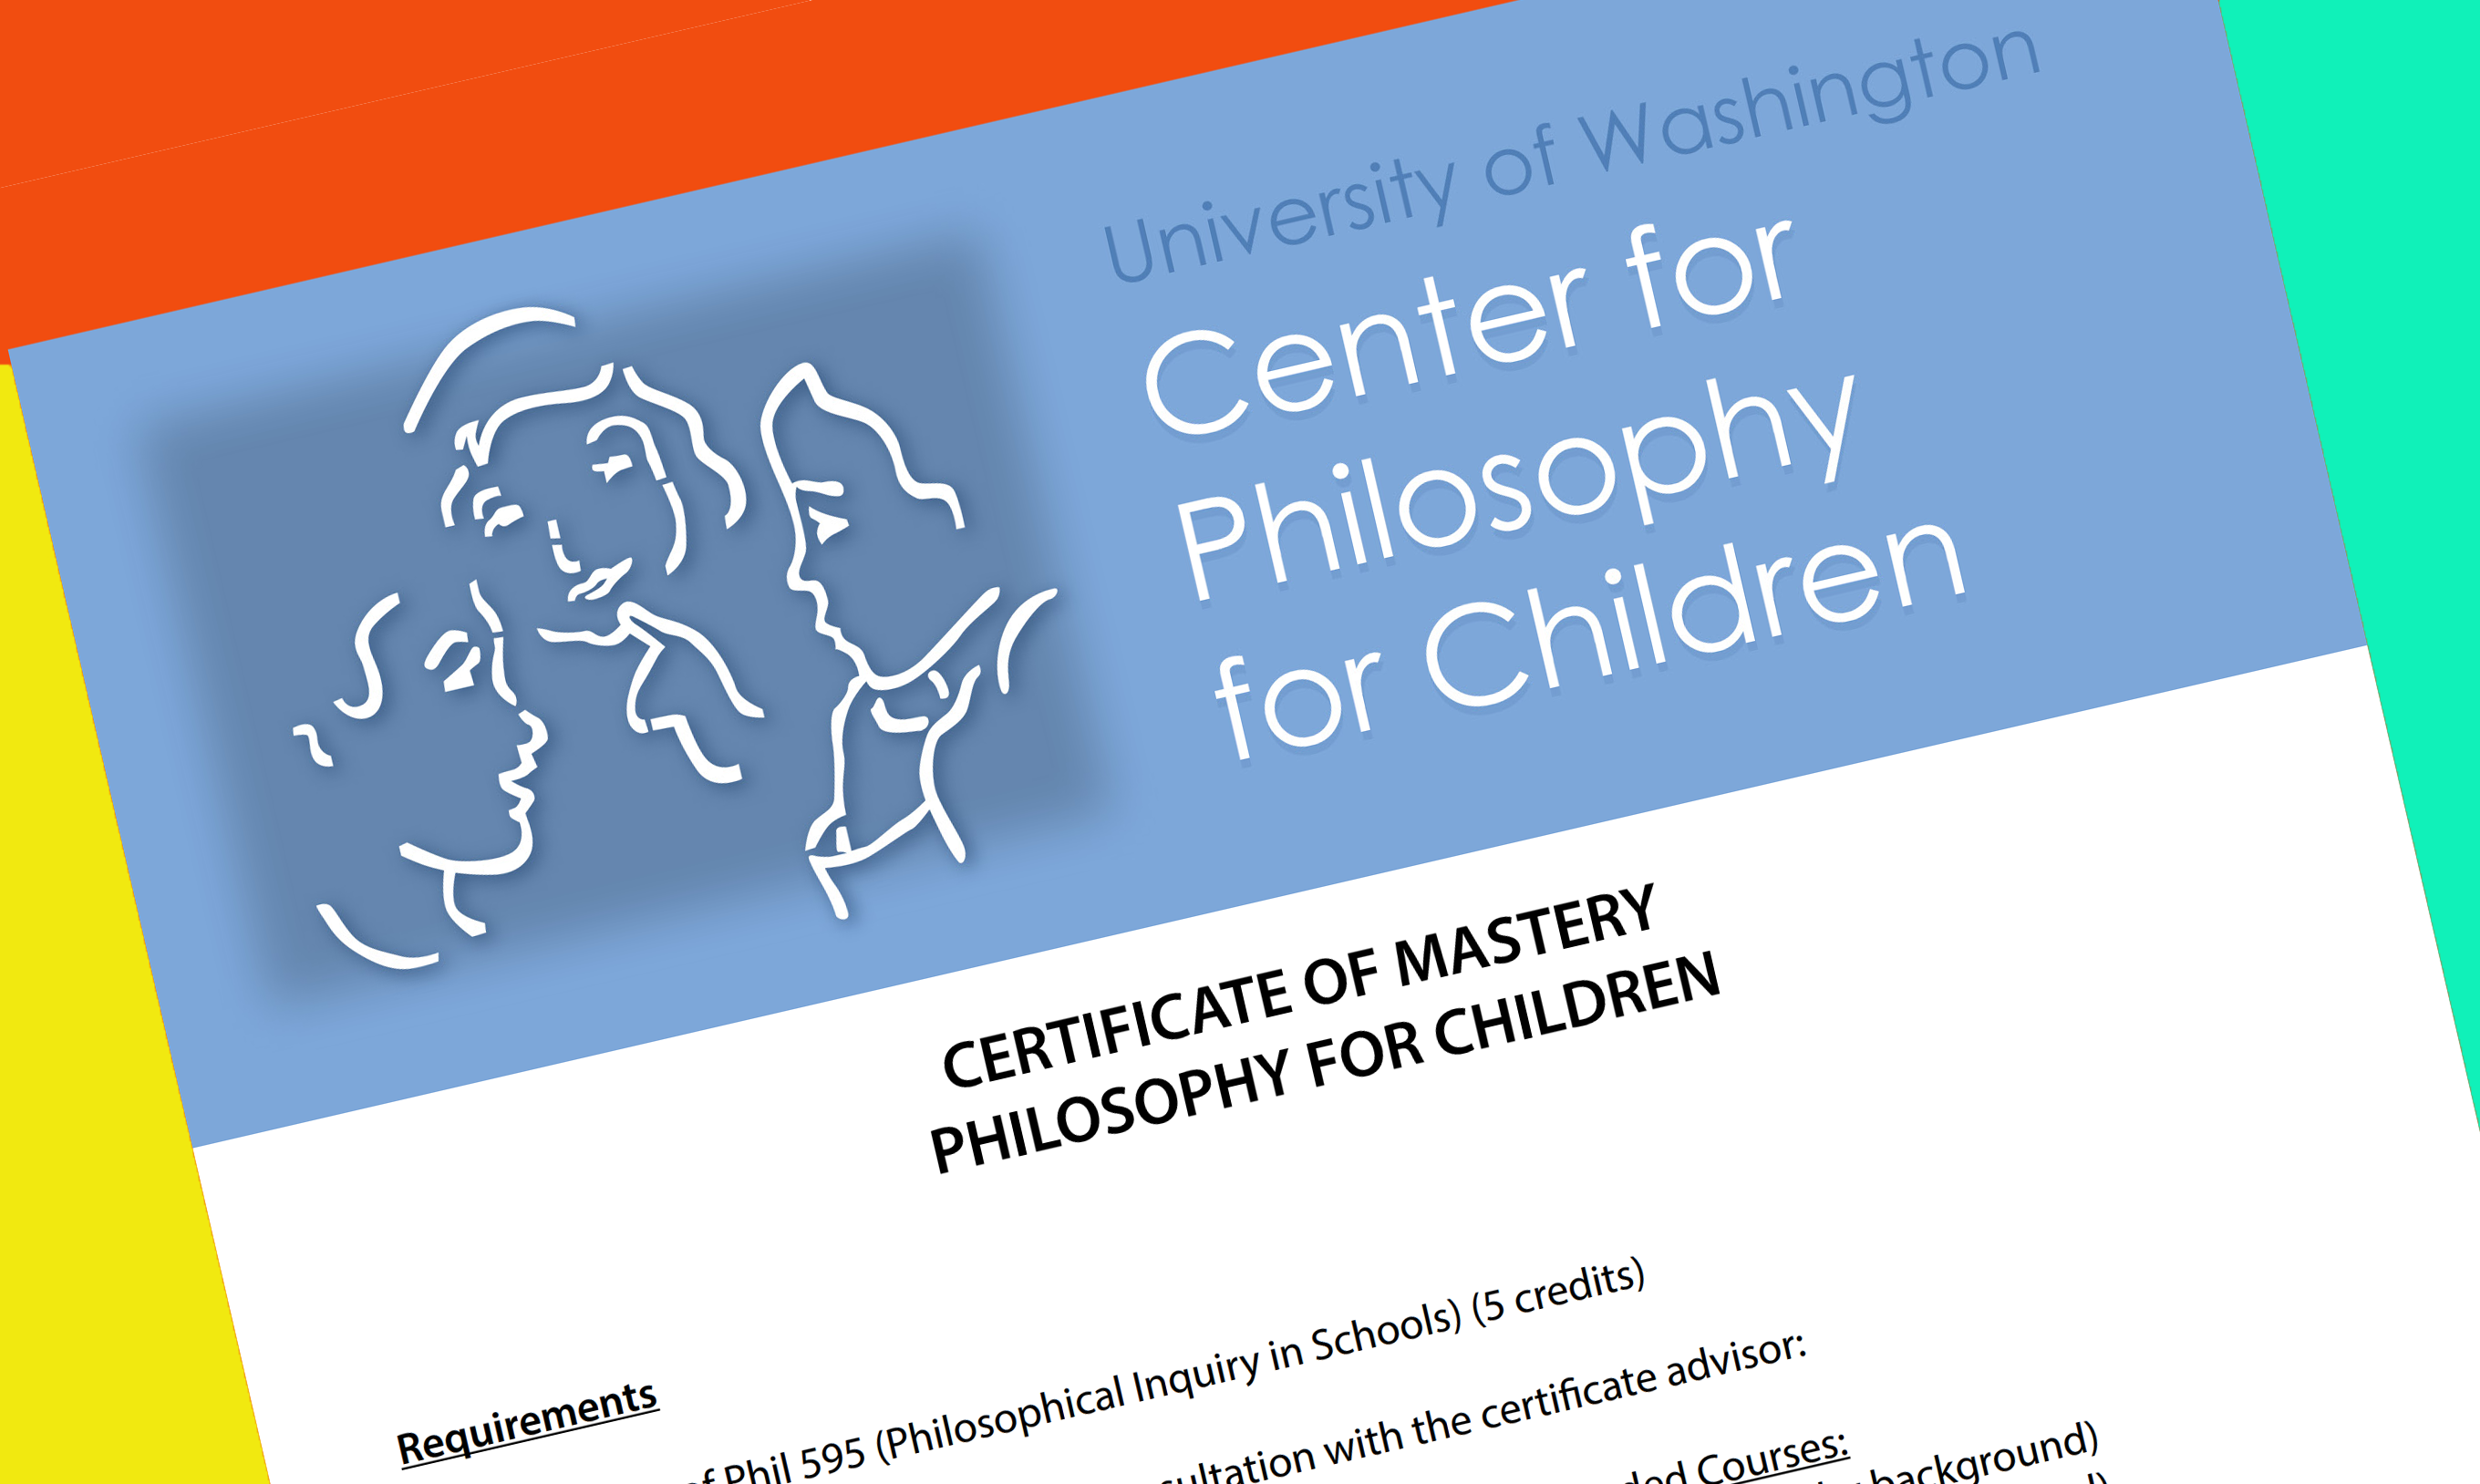 Univ  of Washington Creates Certificate of Mastery in